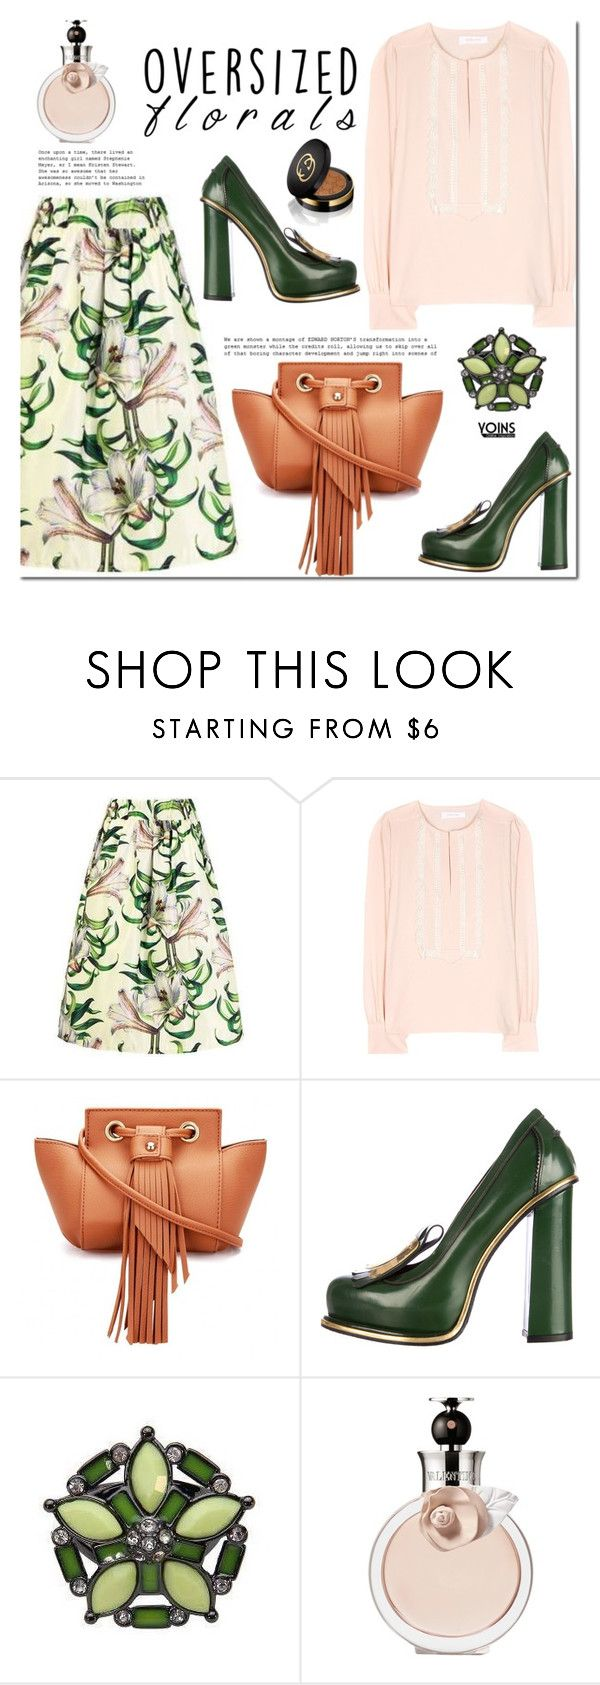 """Oversized Florals"" by mada-malureanu ❤ liked on Polyvore featuring See by Chloé, Valentino, Gucci and oversizedflorals"